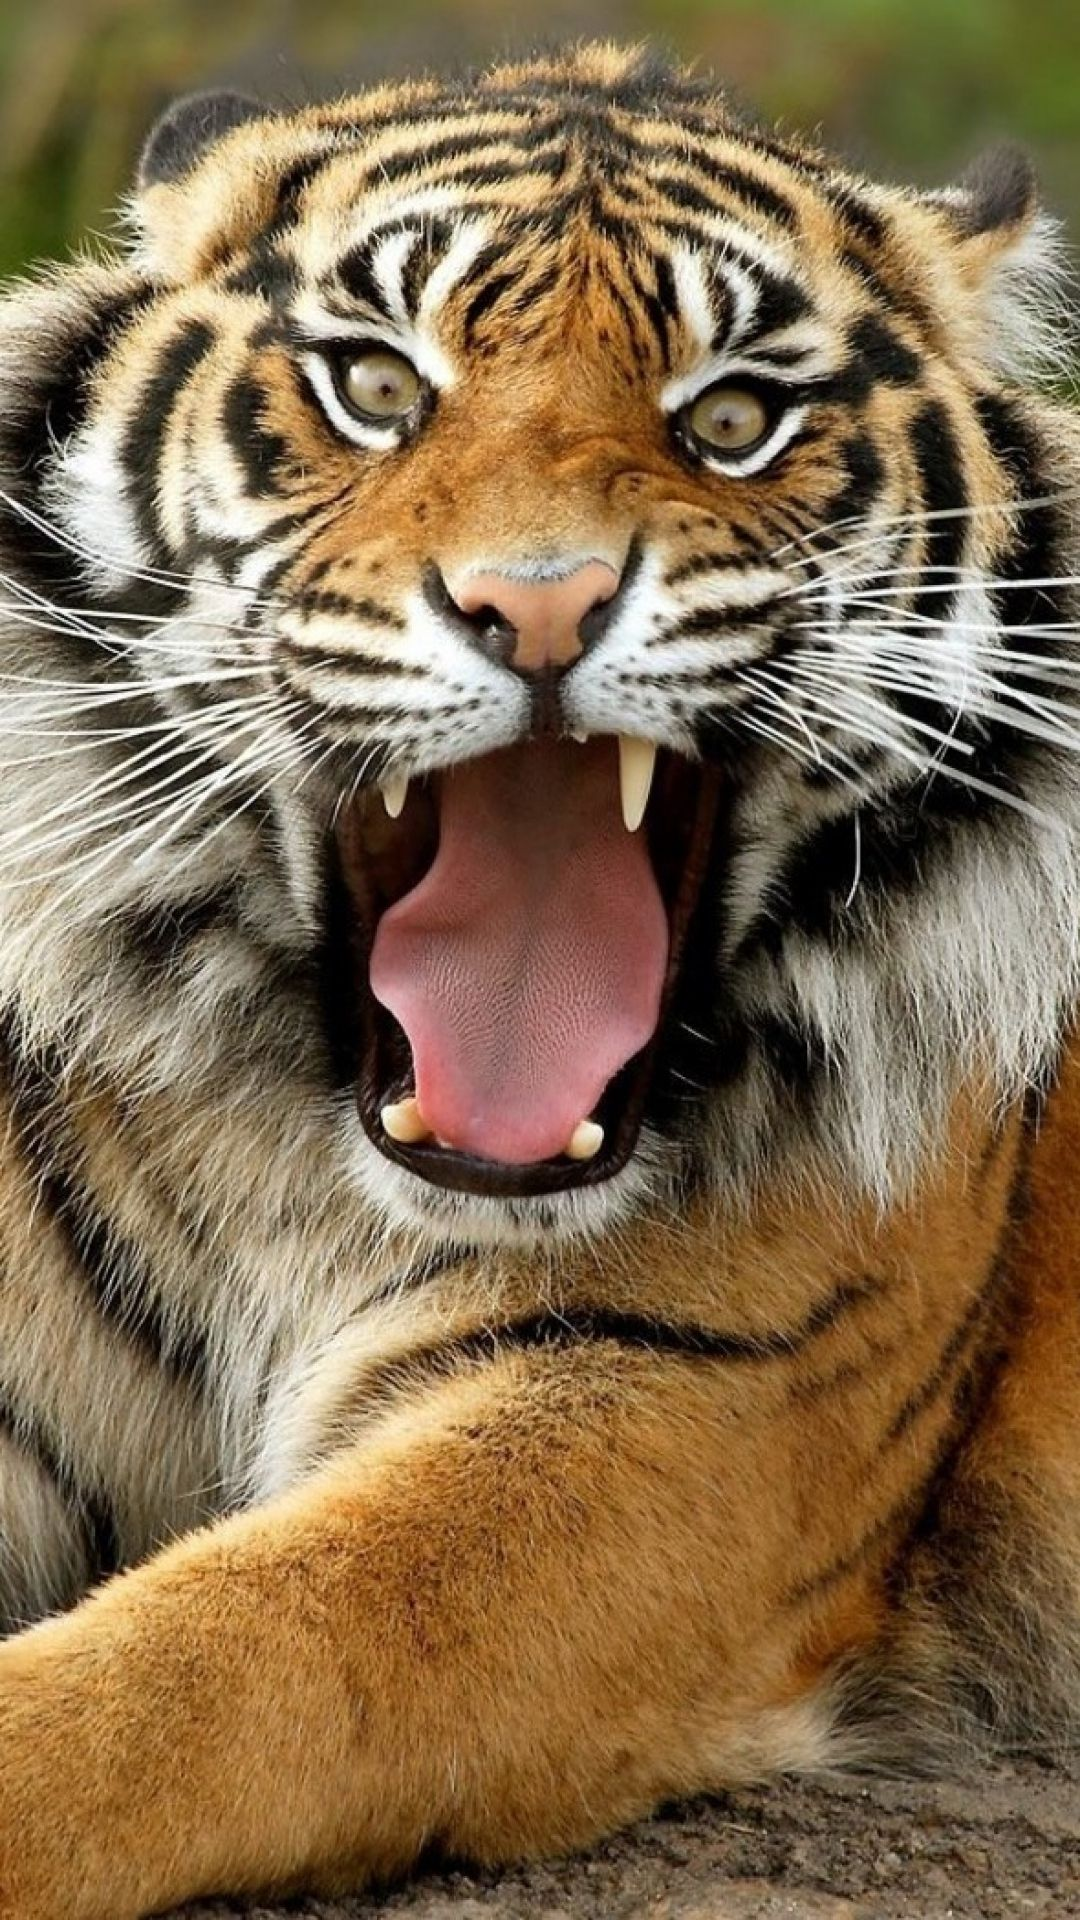 Ferocious Tiger Best htc one wallpapers, free and easy